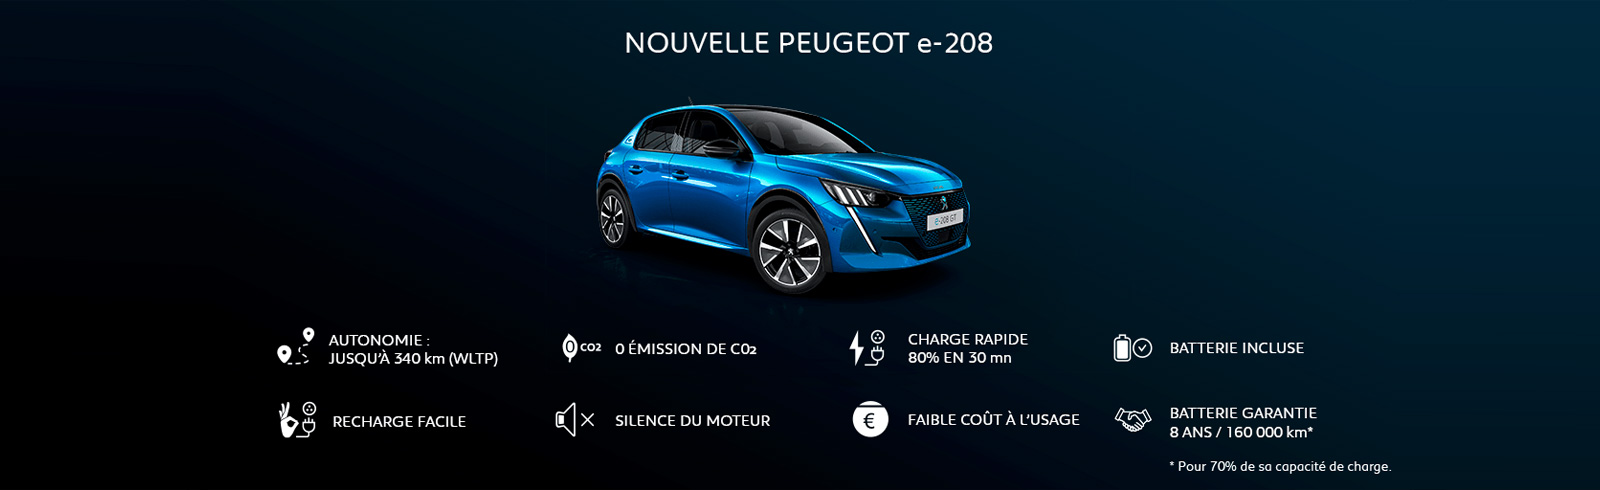 Peugeot e-208 is listed on Peugeot's website unveiling the basic specifications and lots of photos